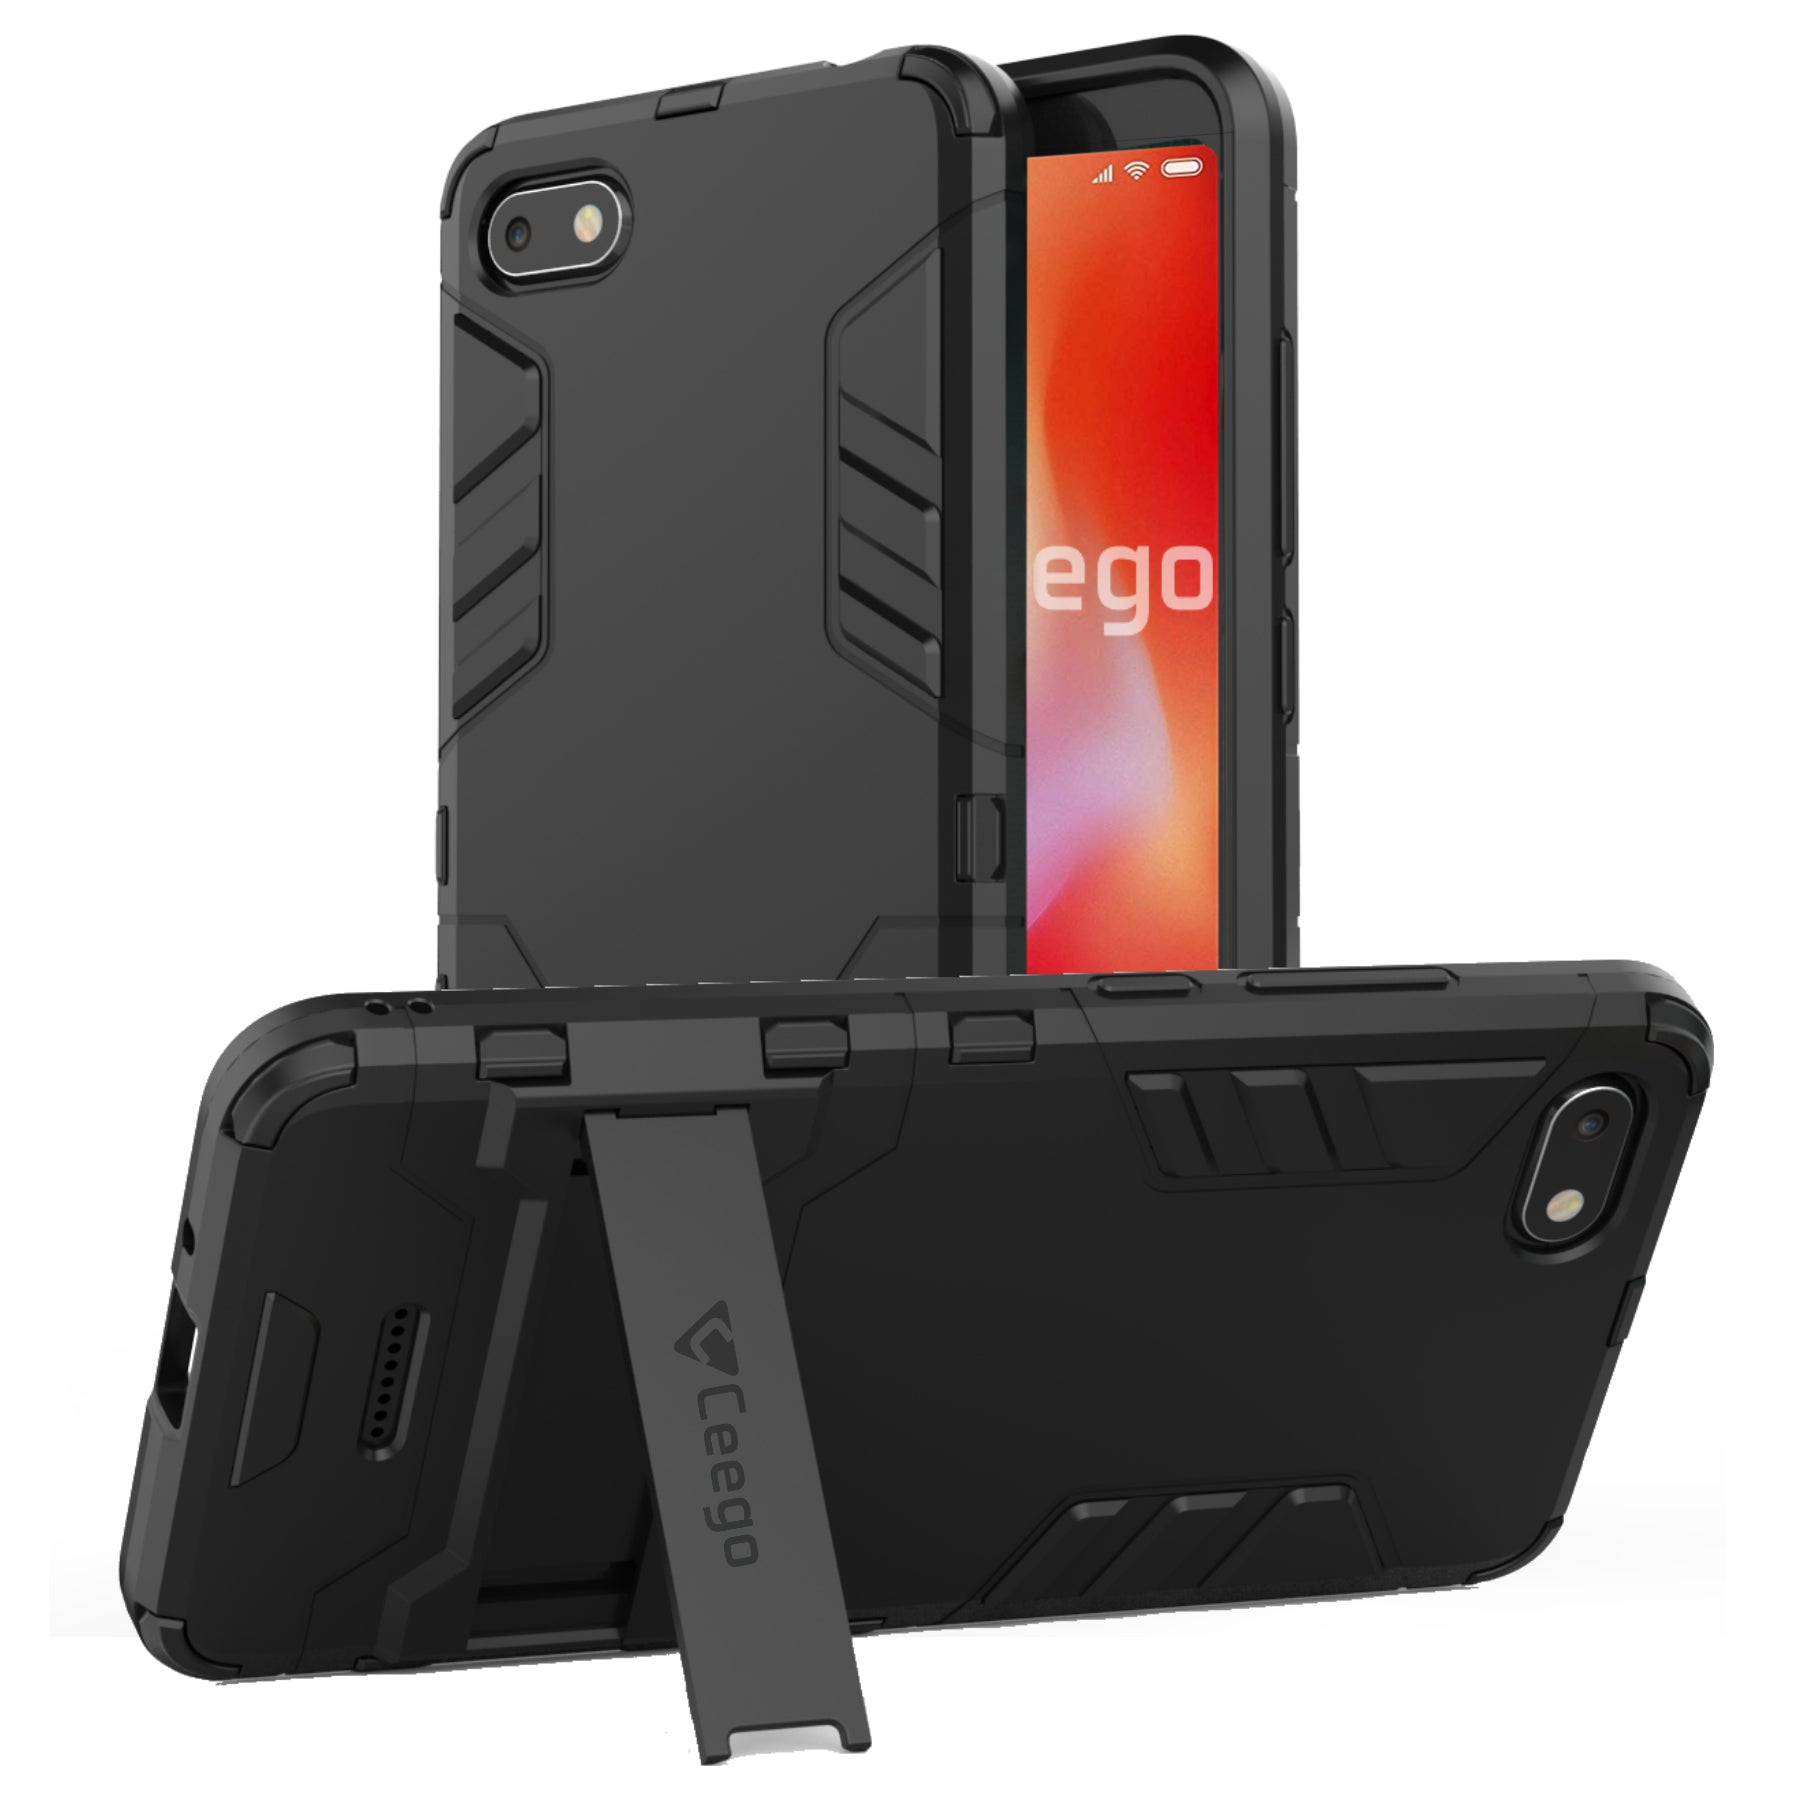 Ceego Stealth Defence Back Case for Xiaomi Redmi 6A – Matte Black